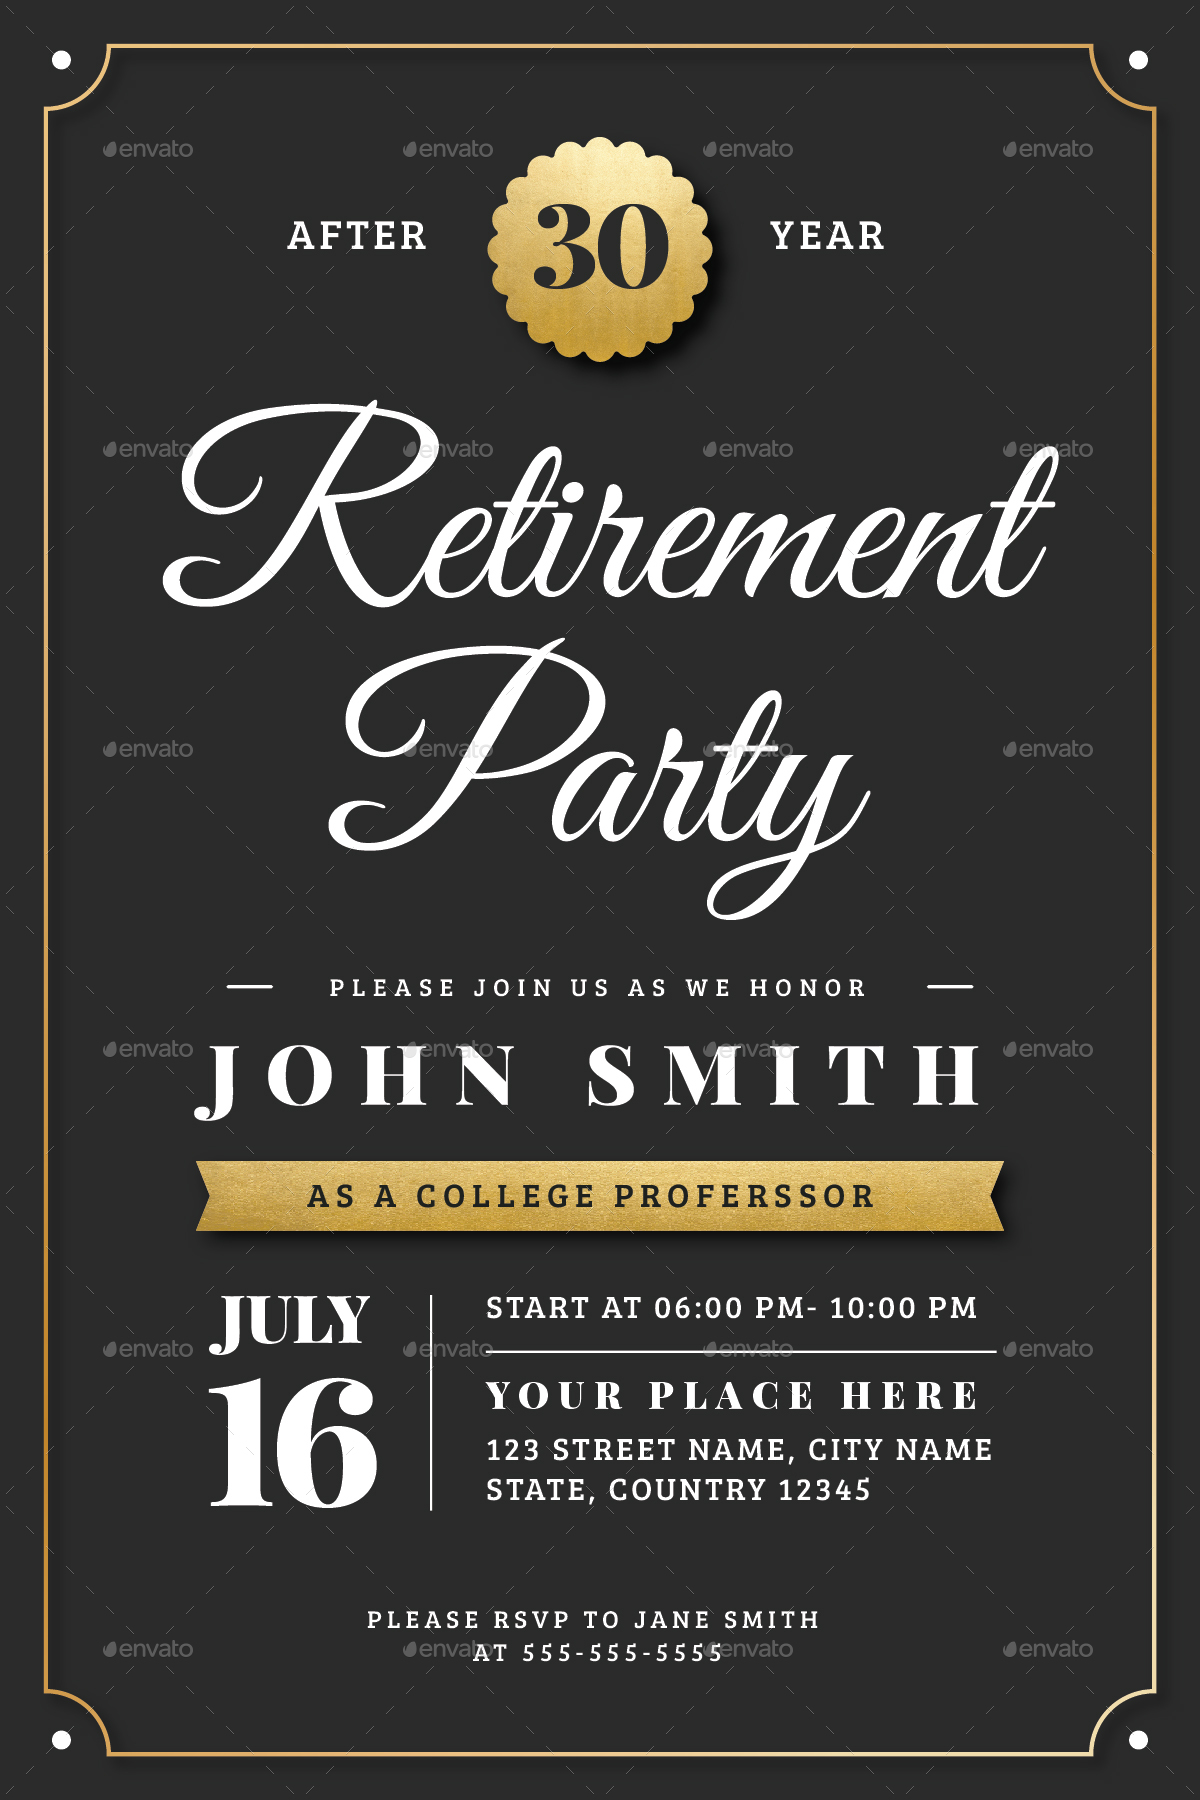 gold retirement invitation flyer templates by vector vactory